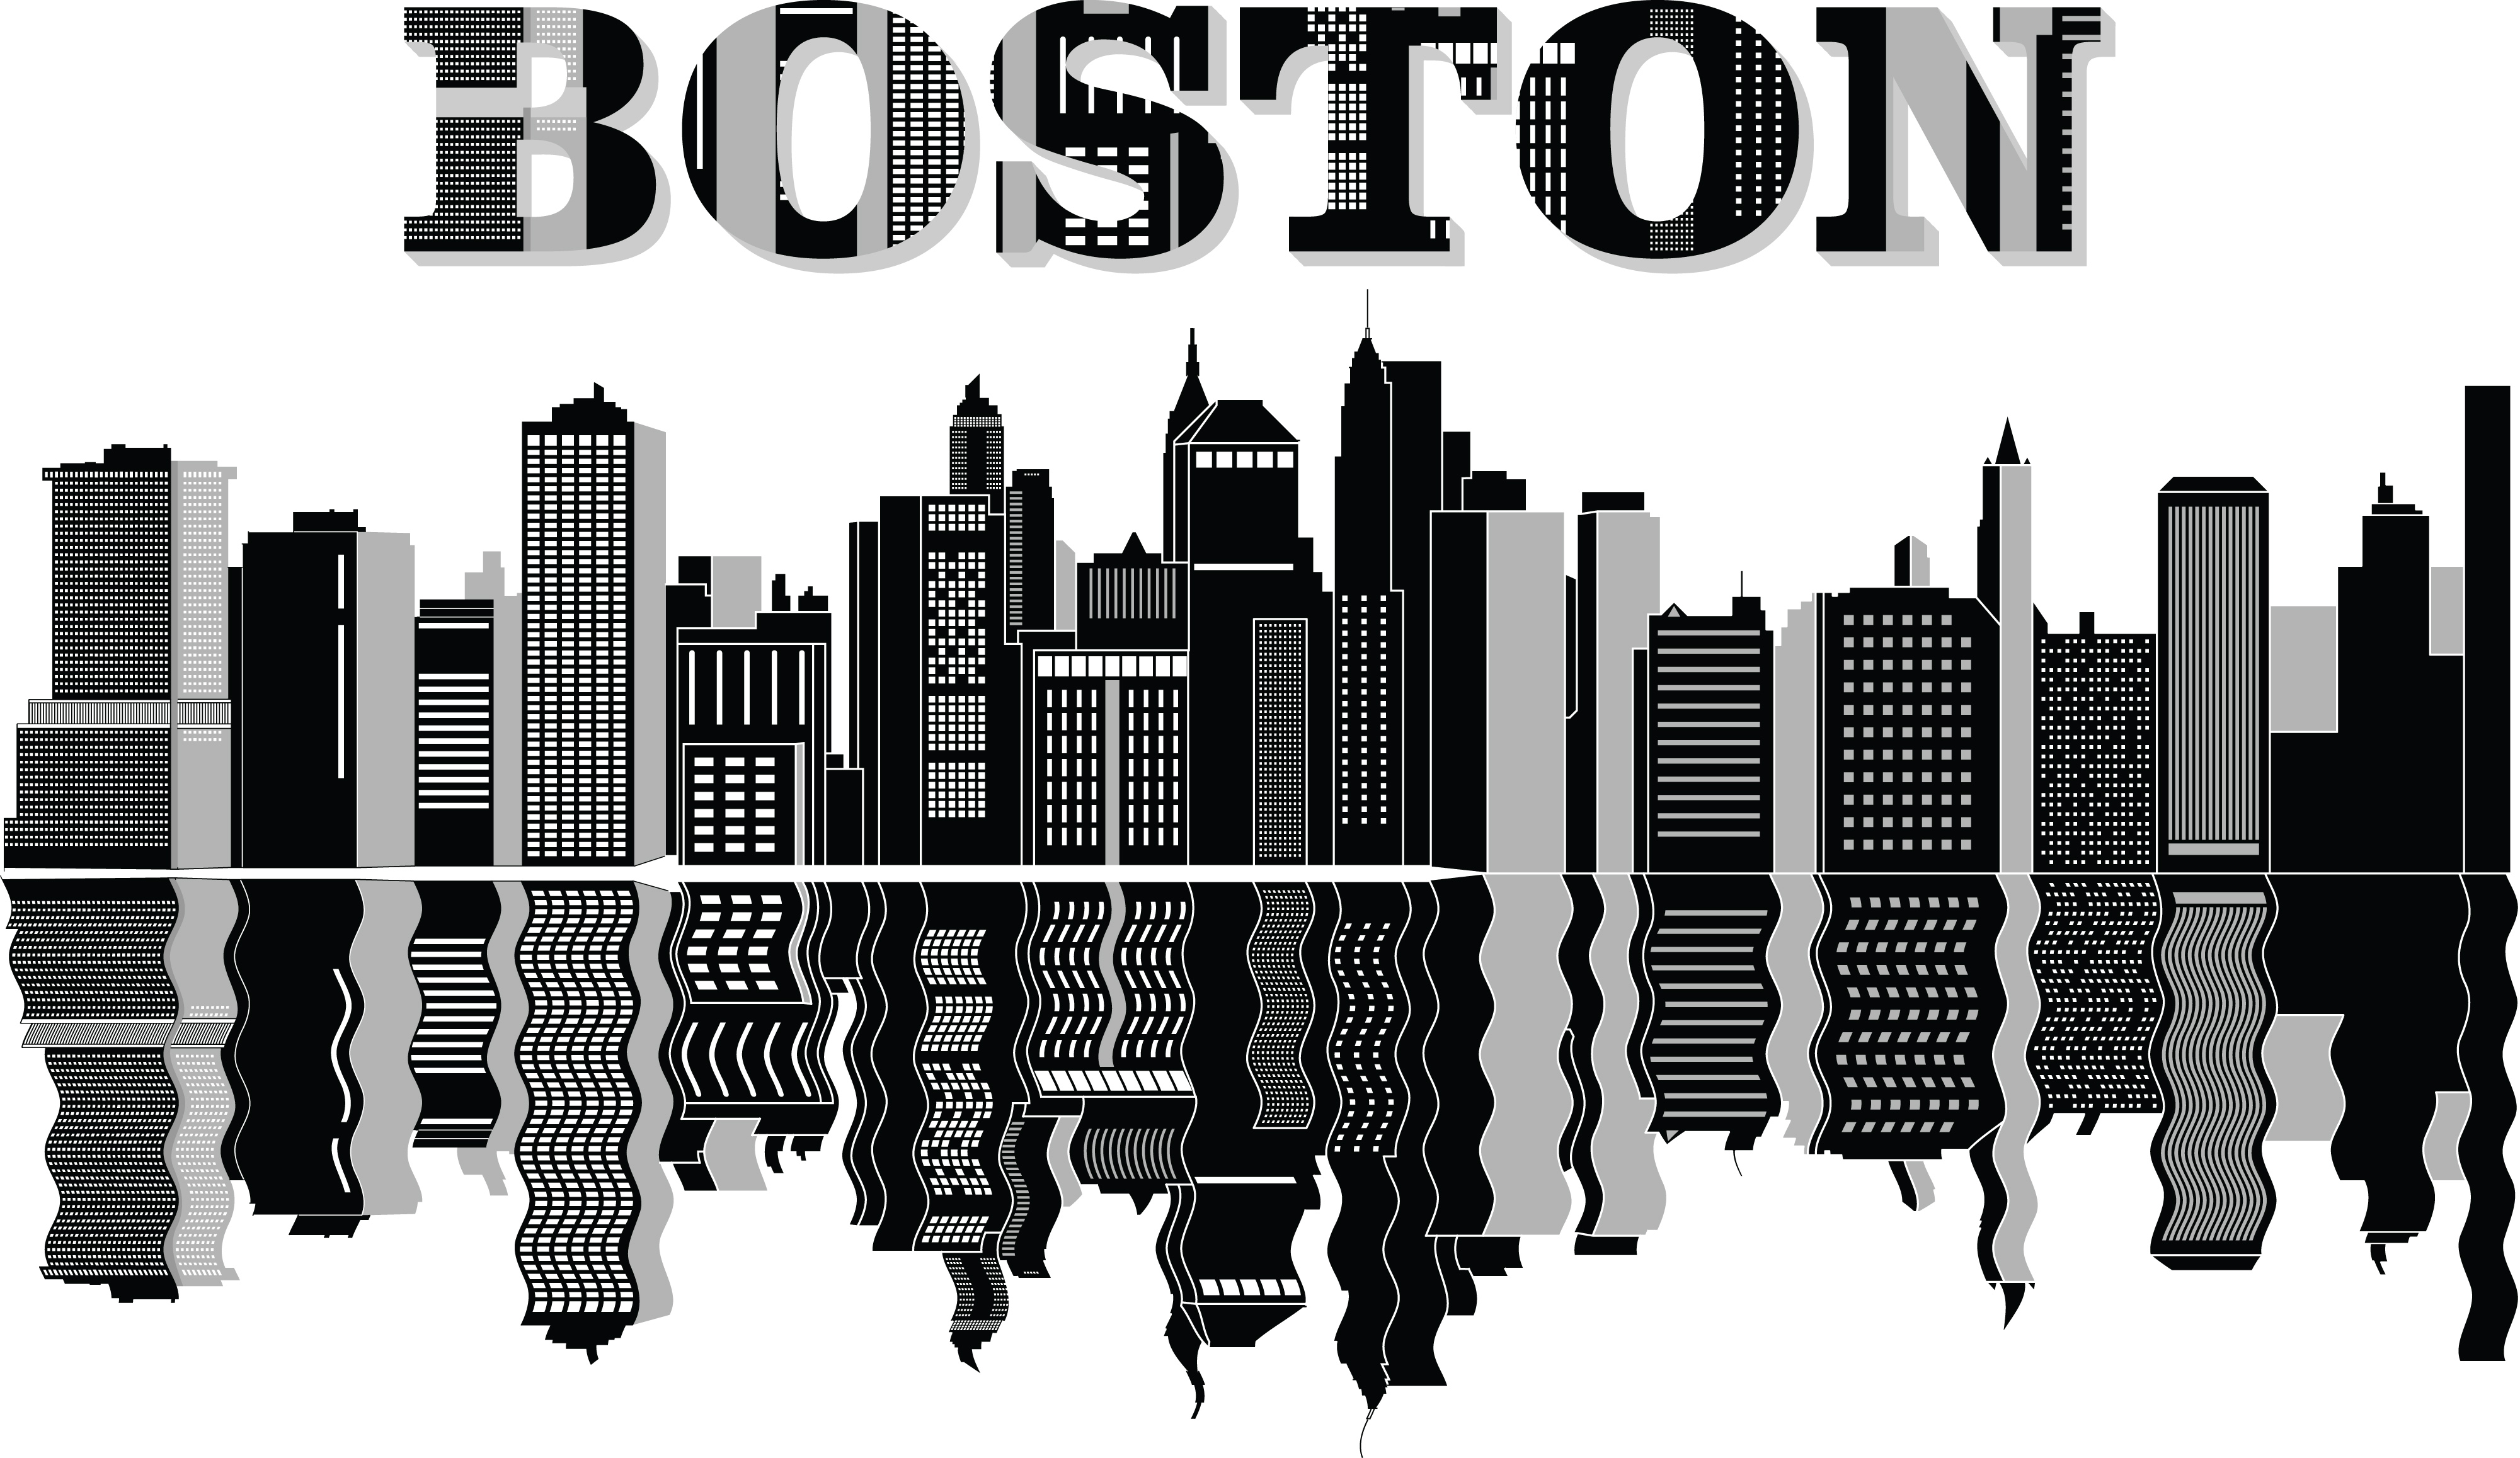 Free Clipart Of A reflecting boston city skyline.